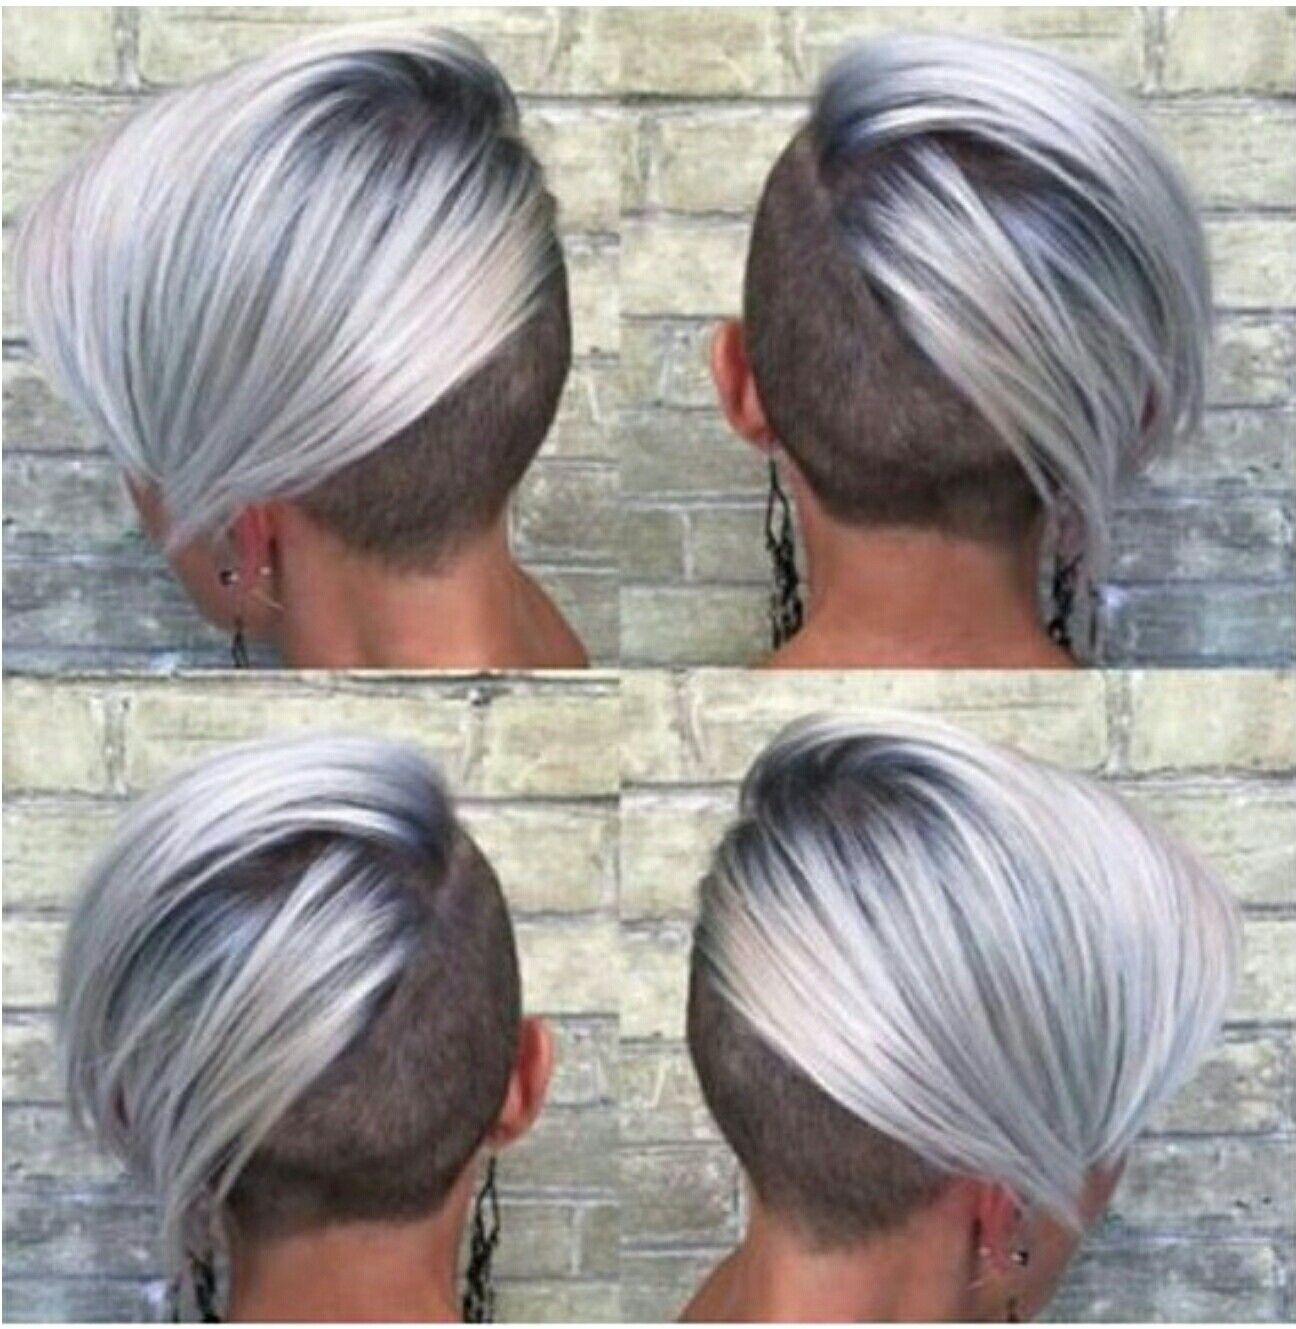 Pin By Mary Acheson On Hairs Pinterest Hair Inspo And Haircuts